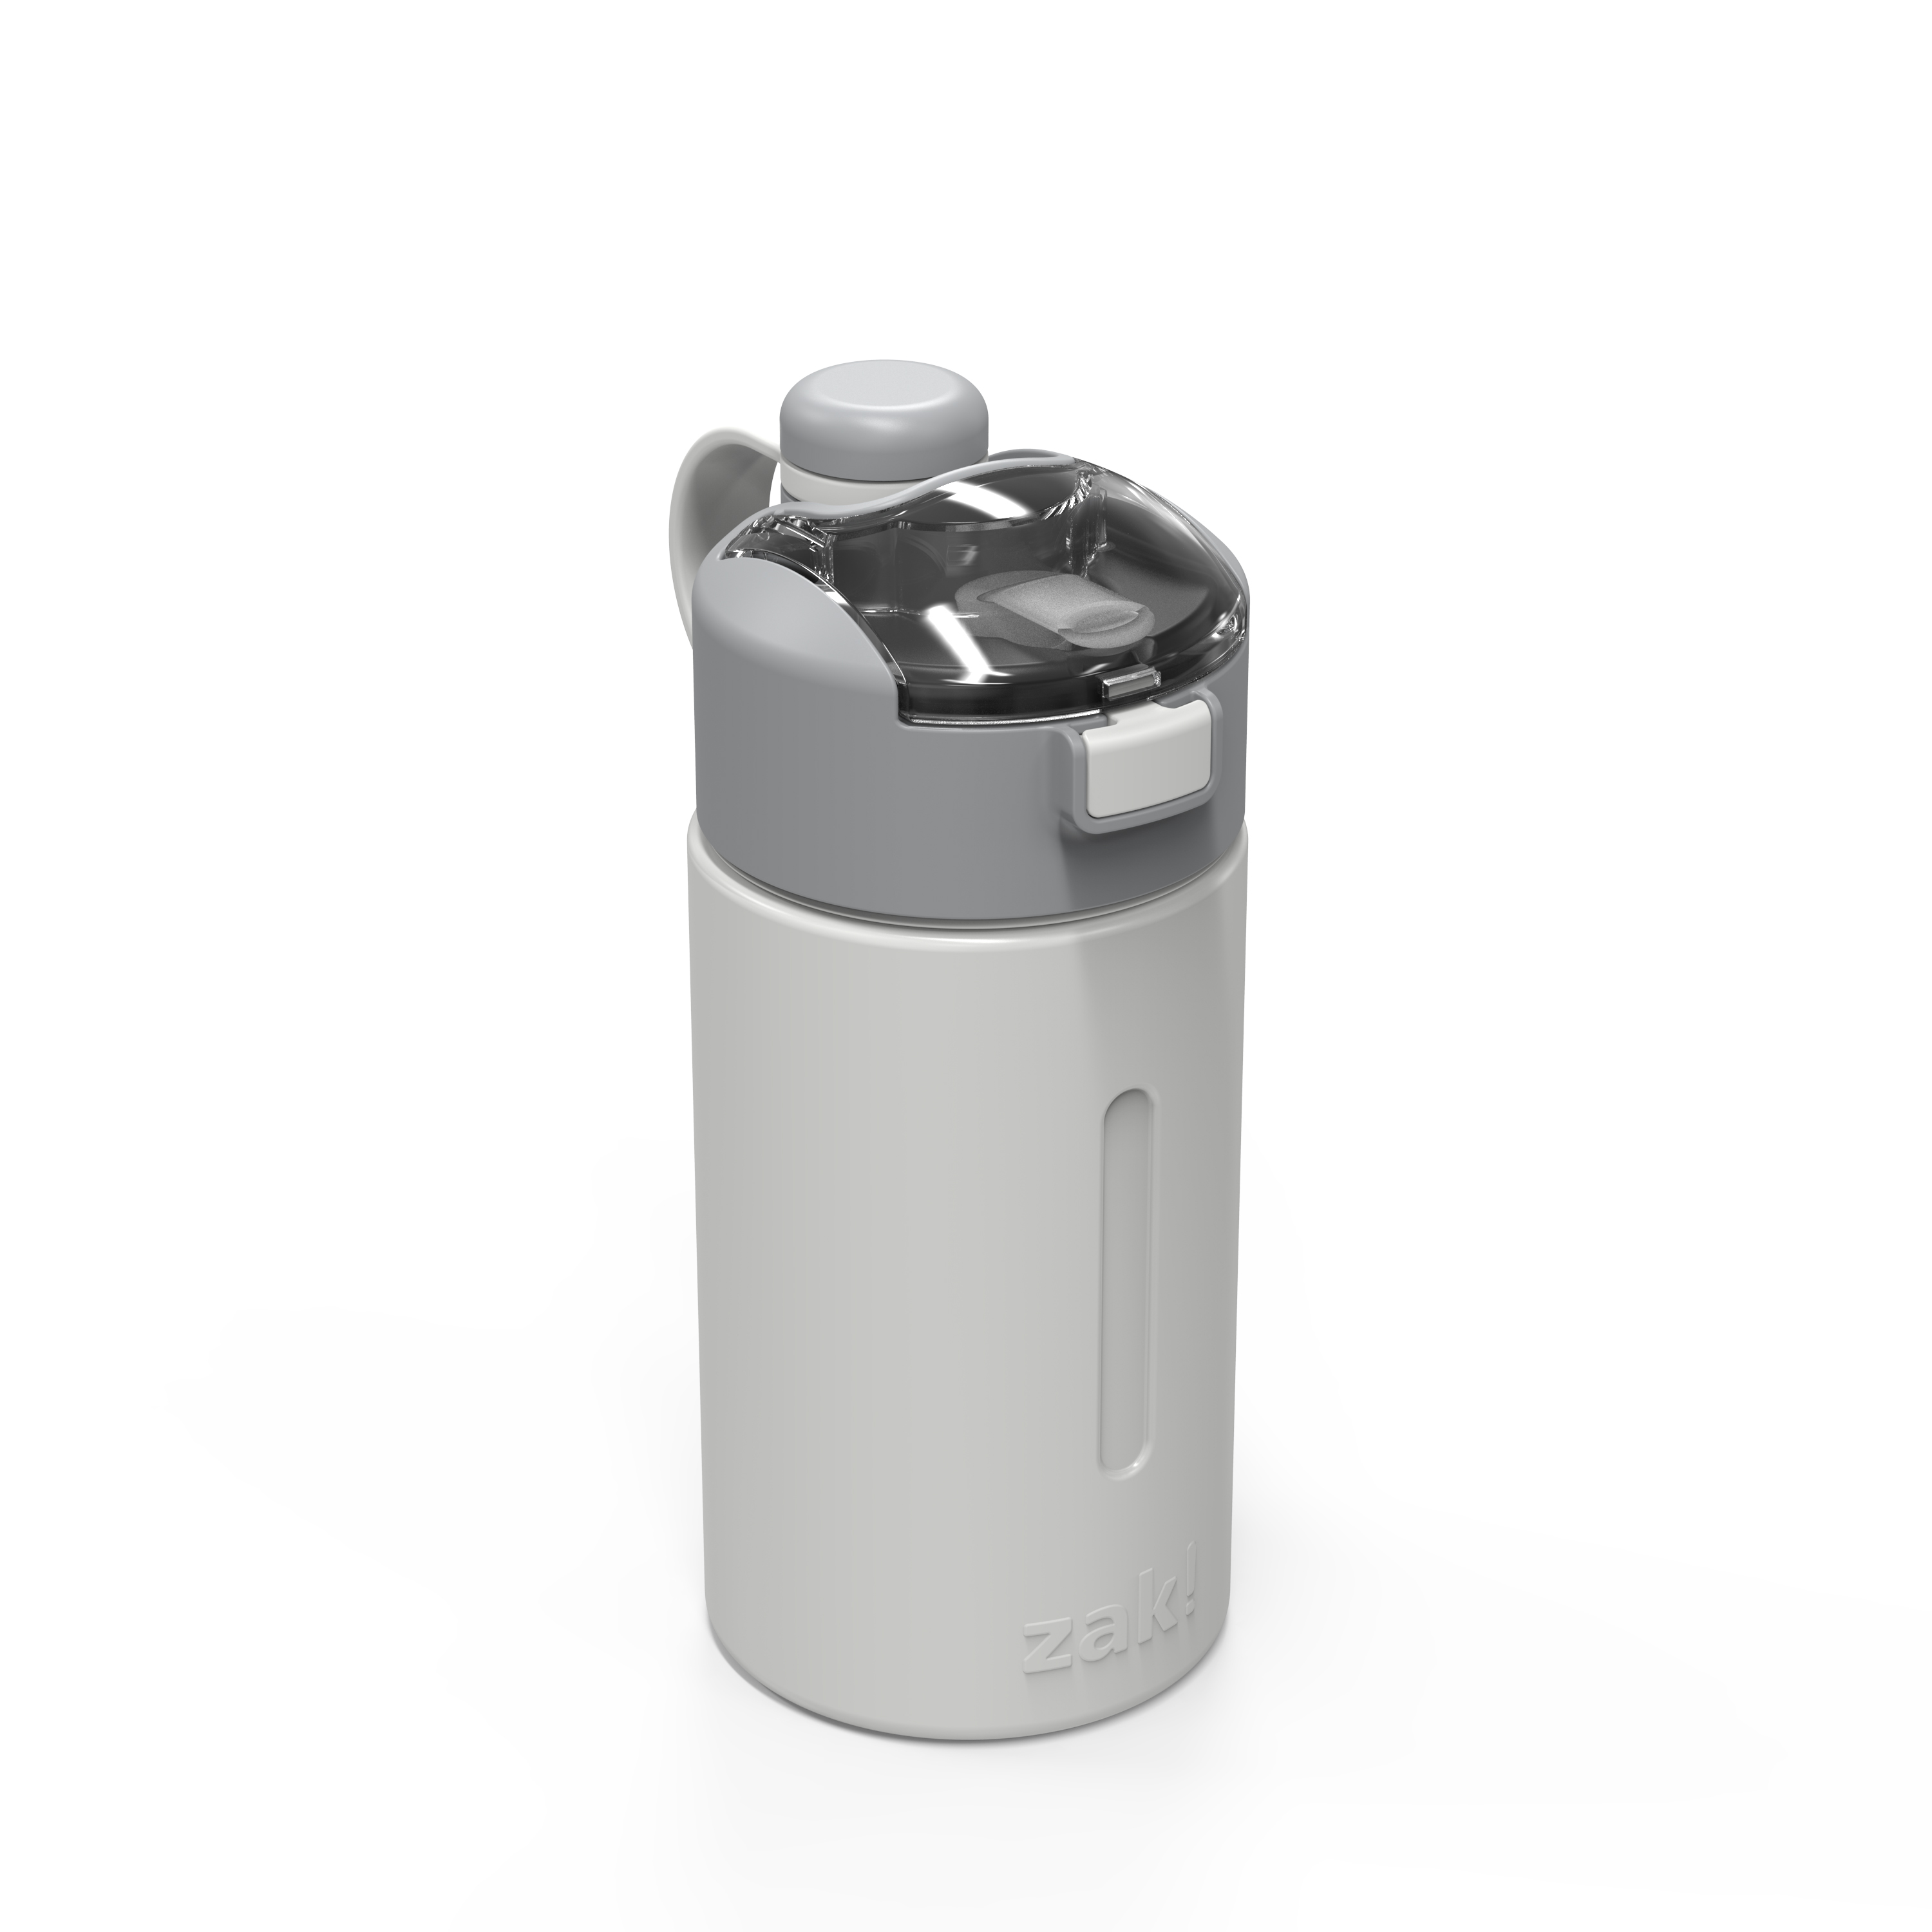 Genesis 12 ounce Vacuum Insulated Stainless Steel Tumbler, Gray slideshow image 3